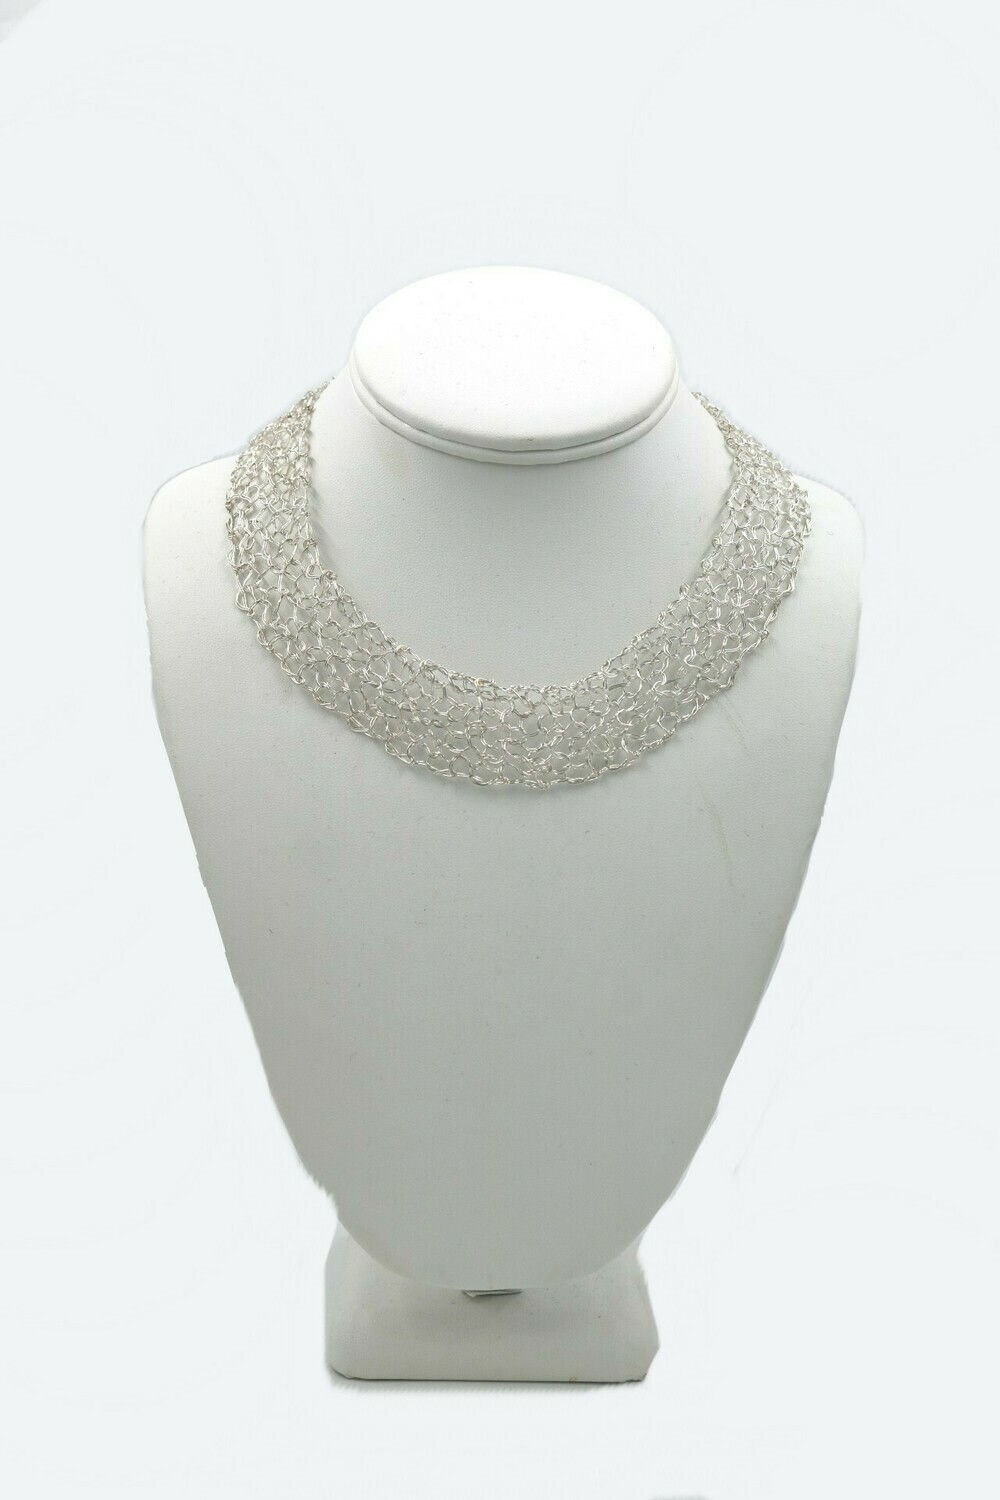 MetaLace Sterling Silver Necklace Plain 16-18 inches